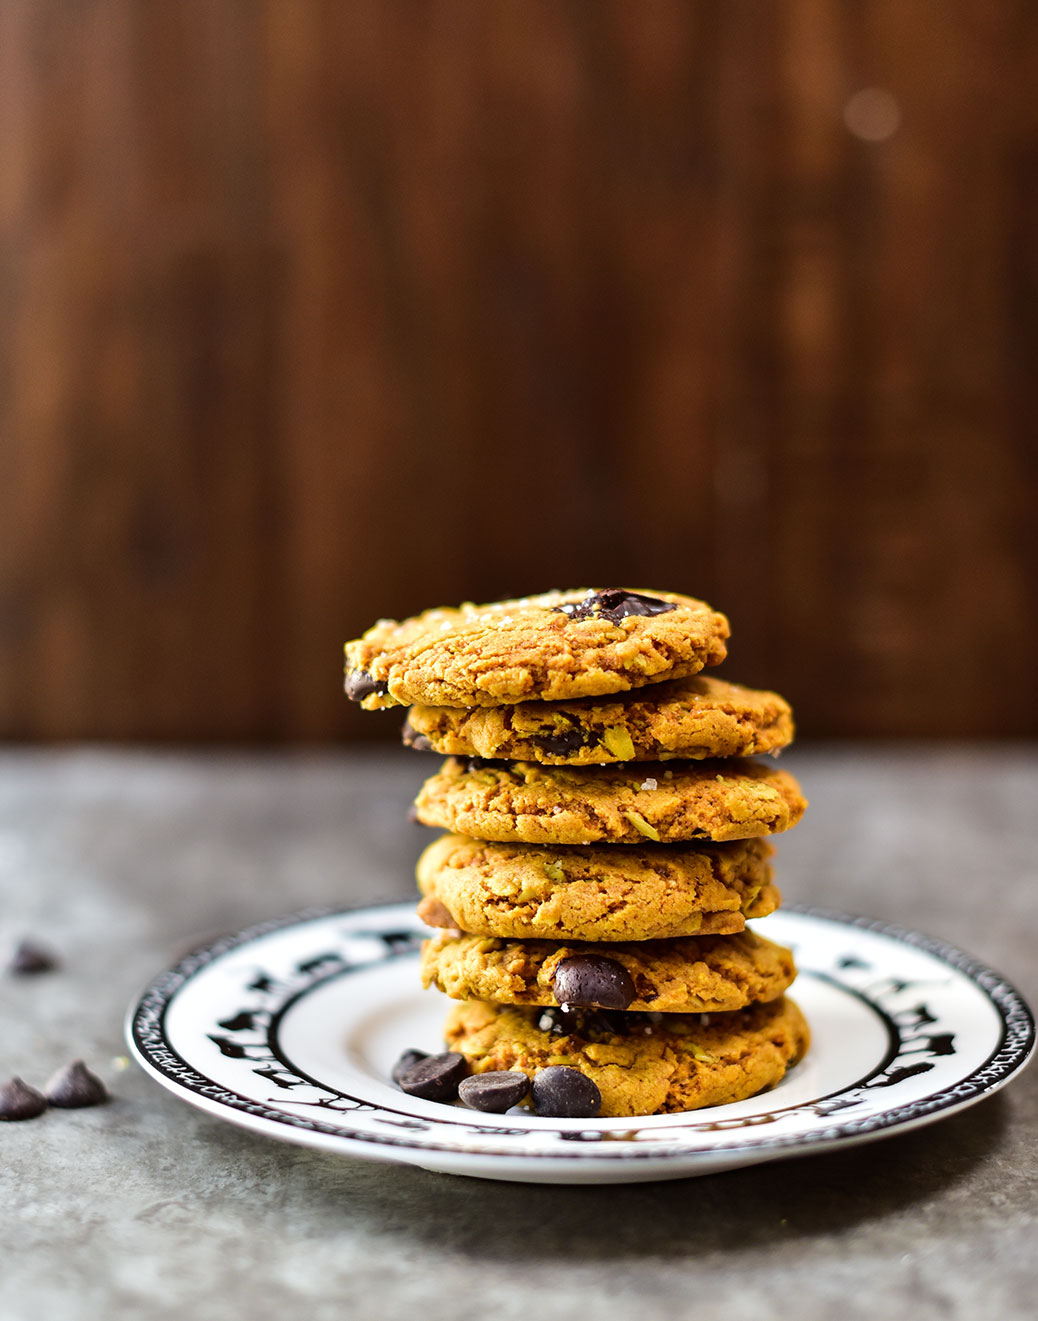 side view of a stack of 6 cookies on a white plate with animal designs